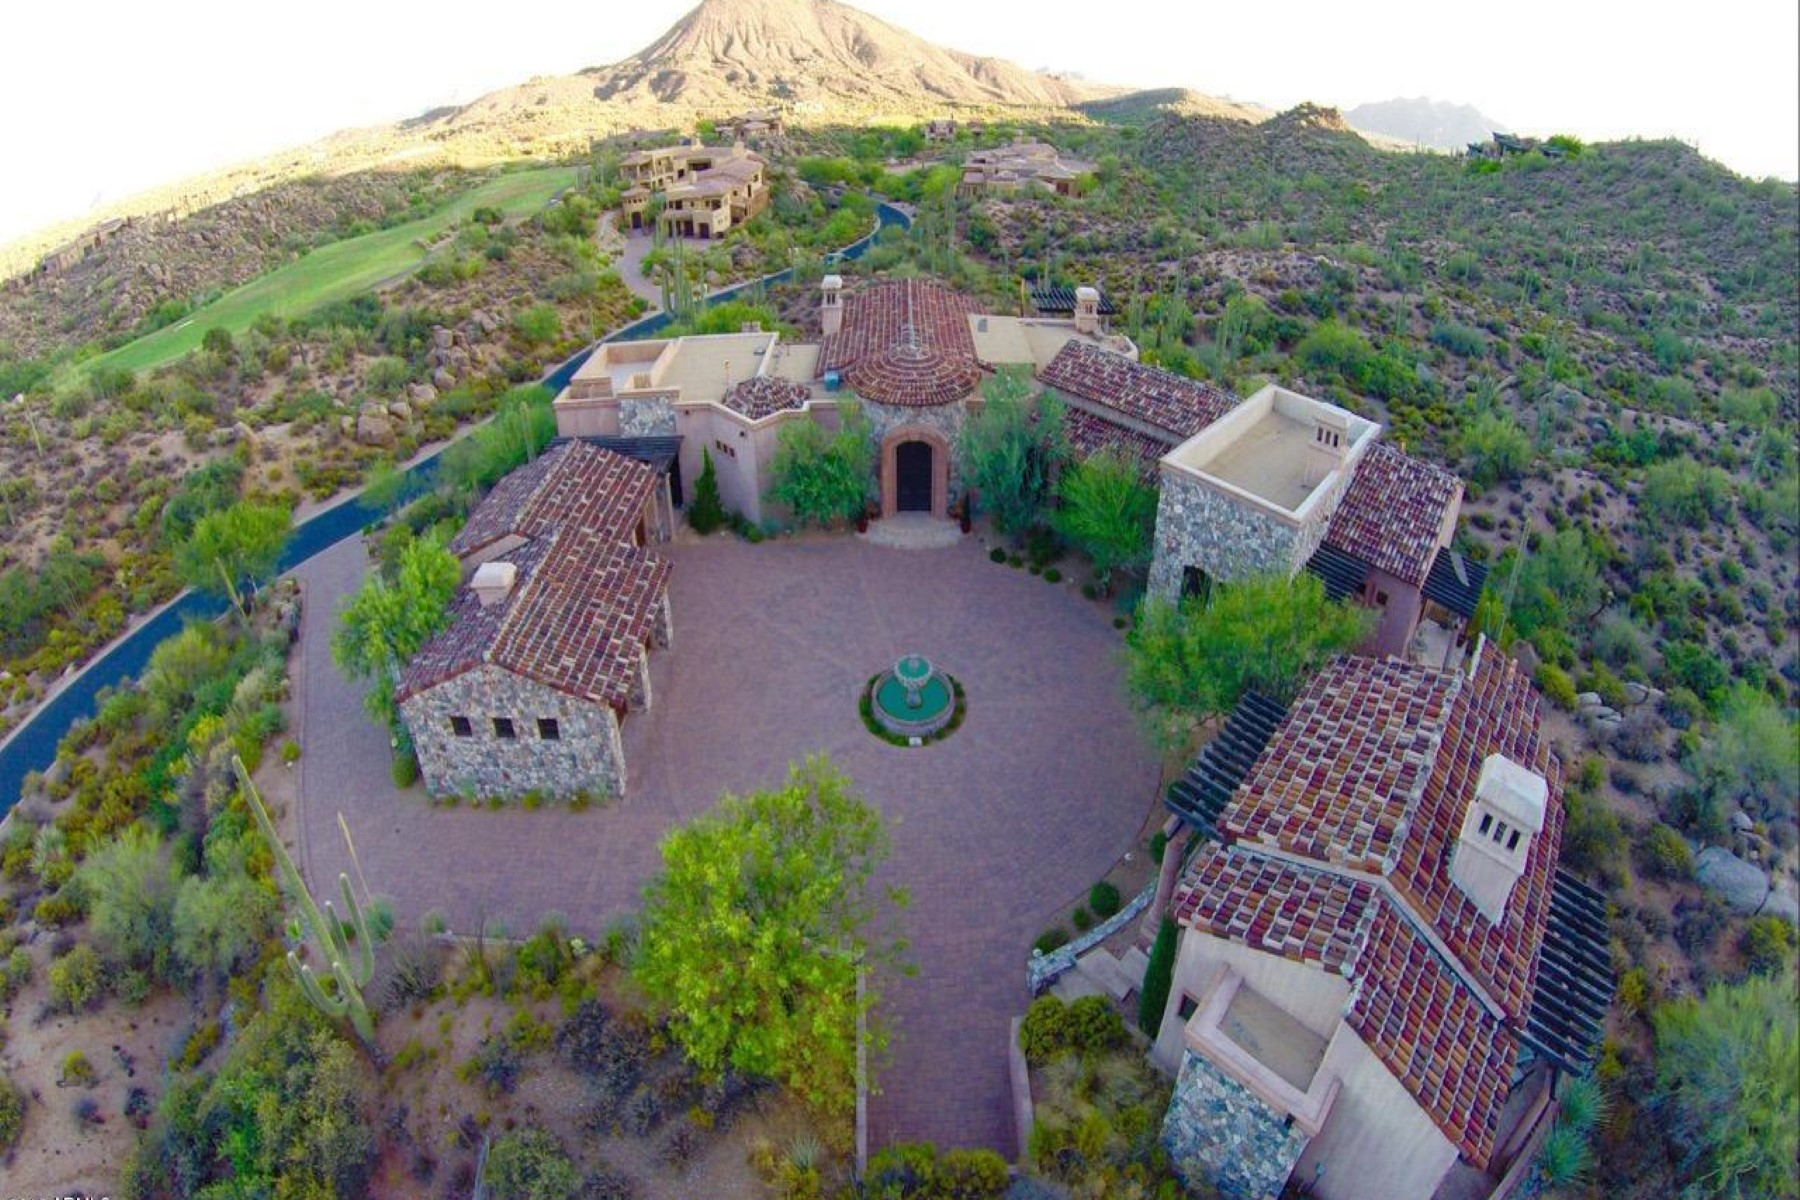 一戸建て のために 売買 アット Beautiful private Tuscan home is situated on 2.2 acres in Saguaro Forest 41324 N 95th Street Scottsdale, アリゾナ, 85262 アメリカ合衆国